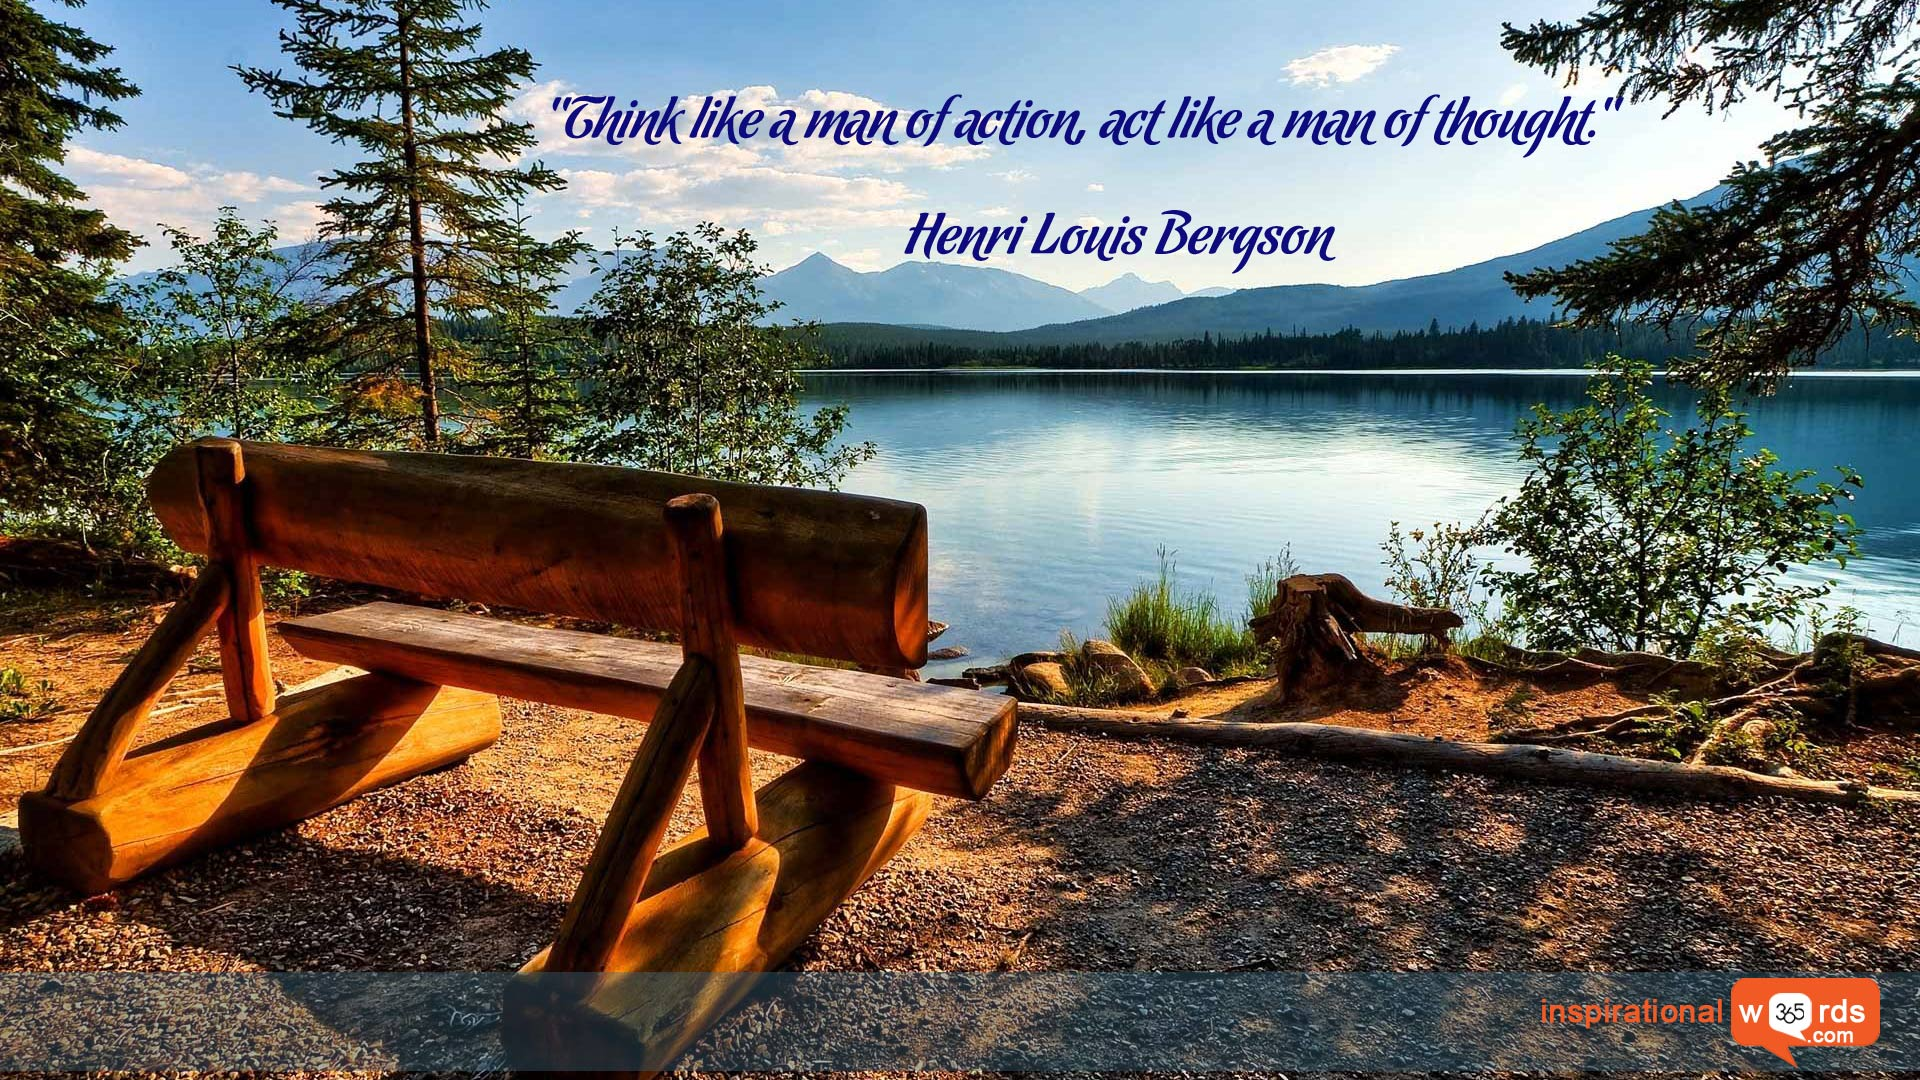 Inspirational Wallpaper Quote by Henri Louis Bergson